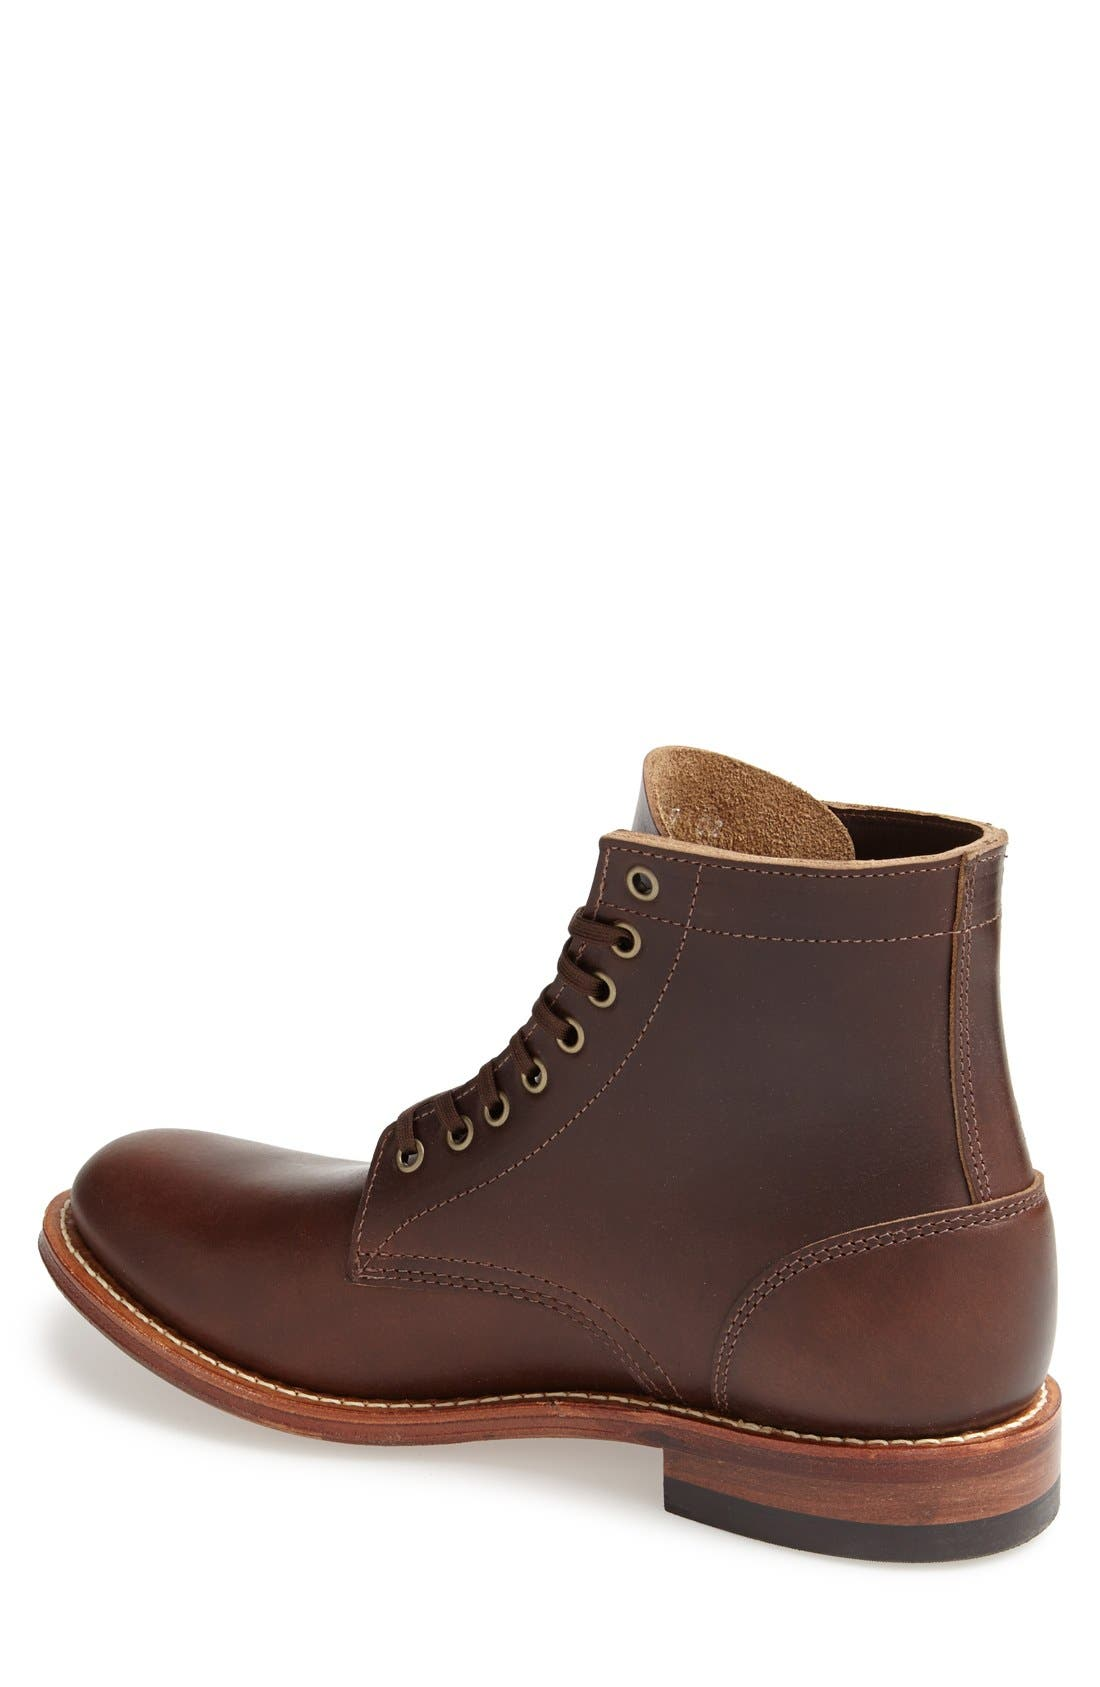 Plain Toe Trench Boot,                             Alternate thumbnail 2, color,                             Brown